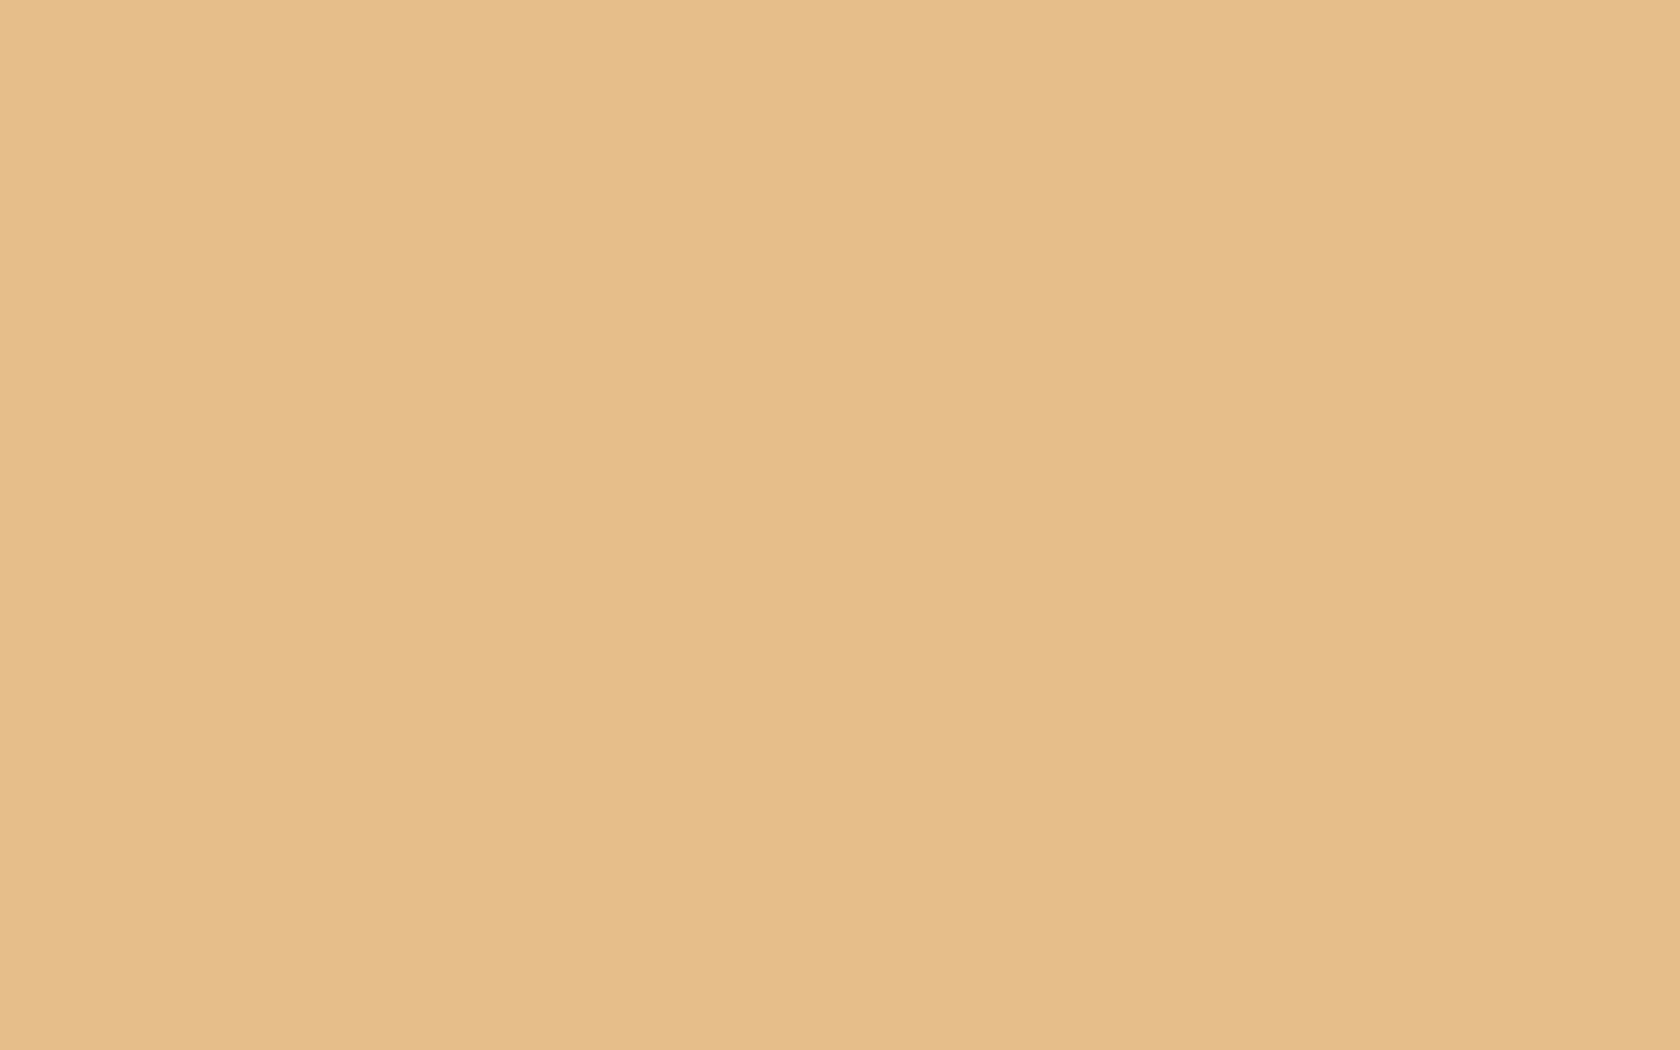 1680x1050 Pale Gold Solid Color Background